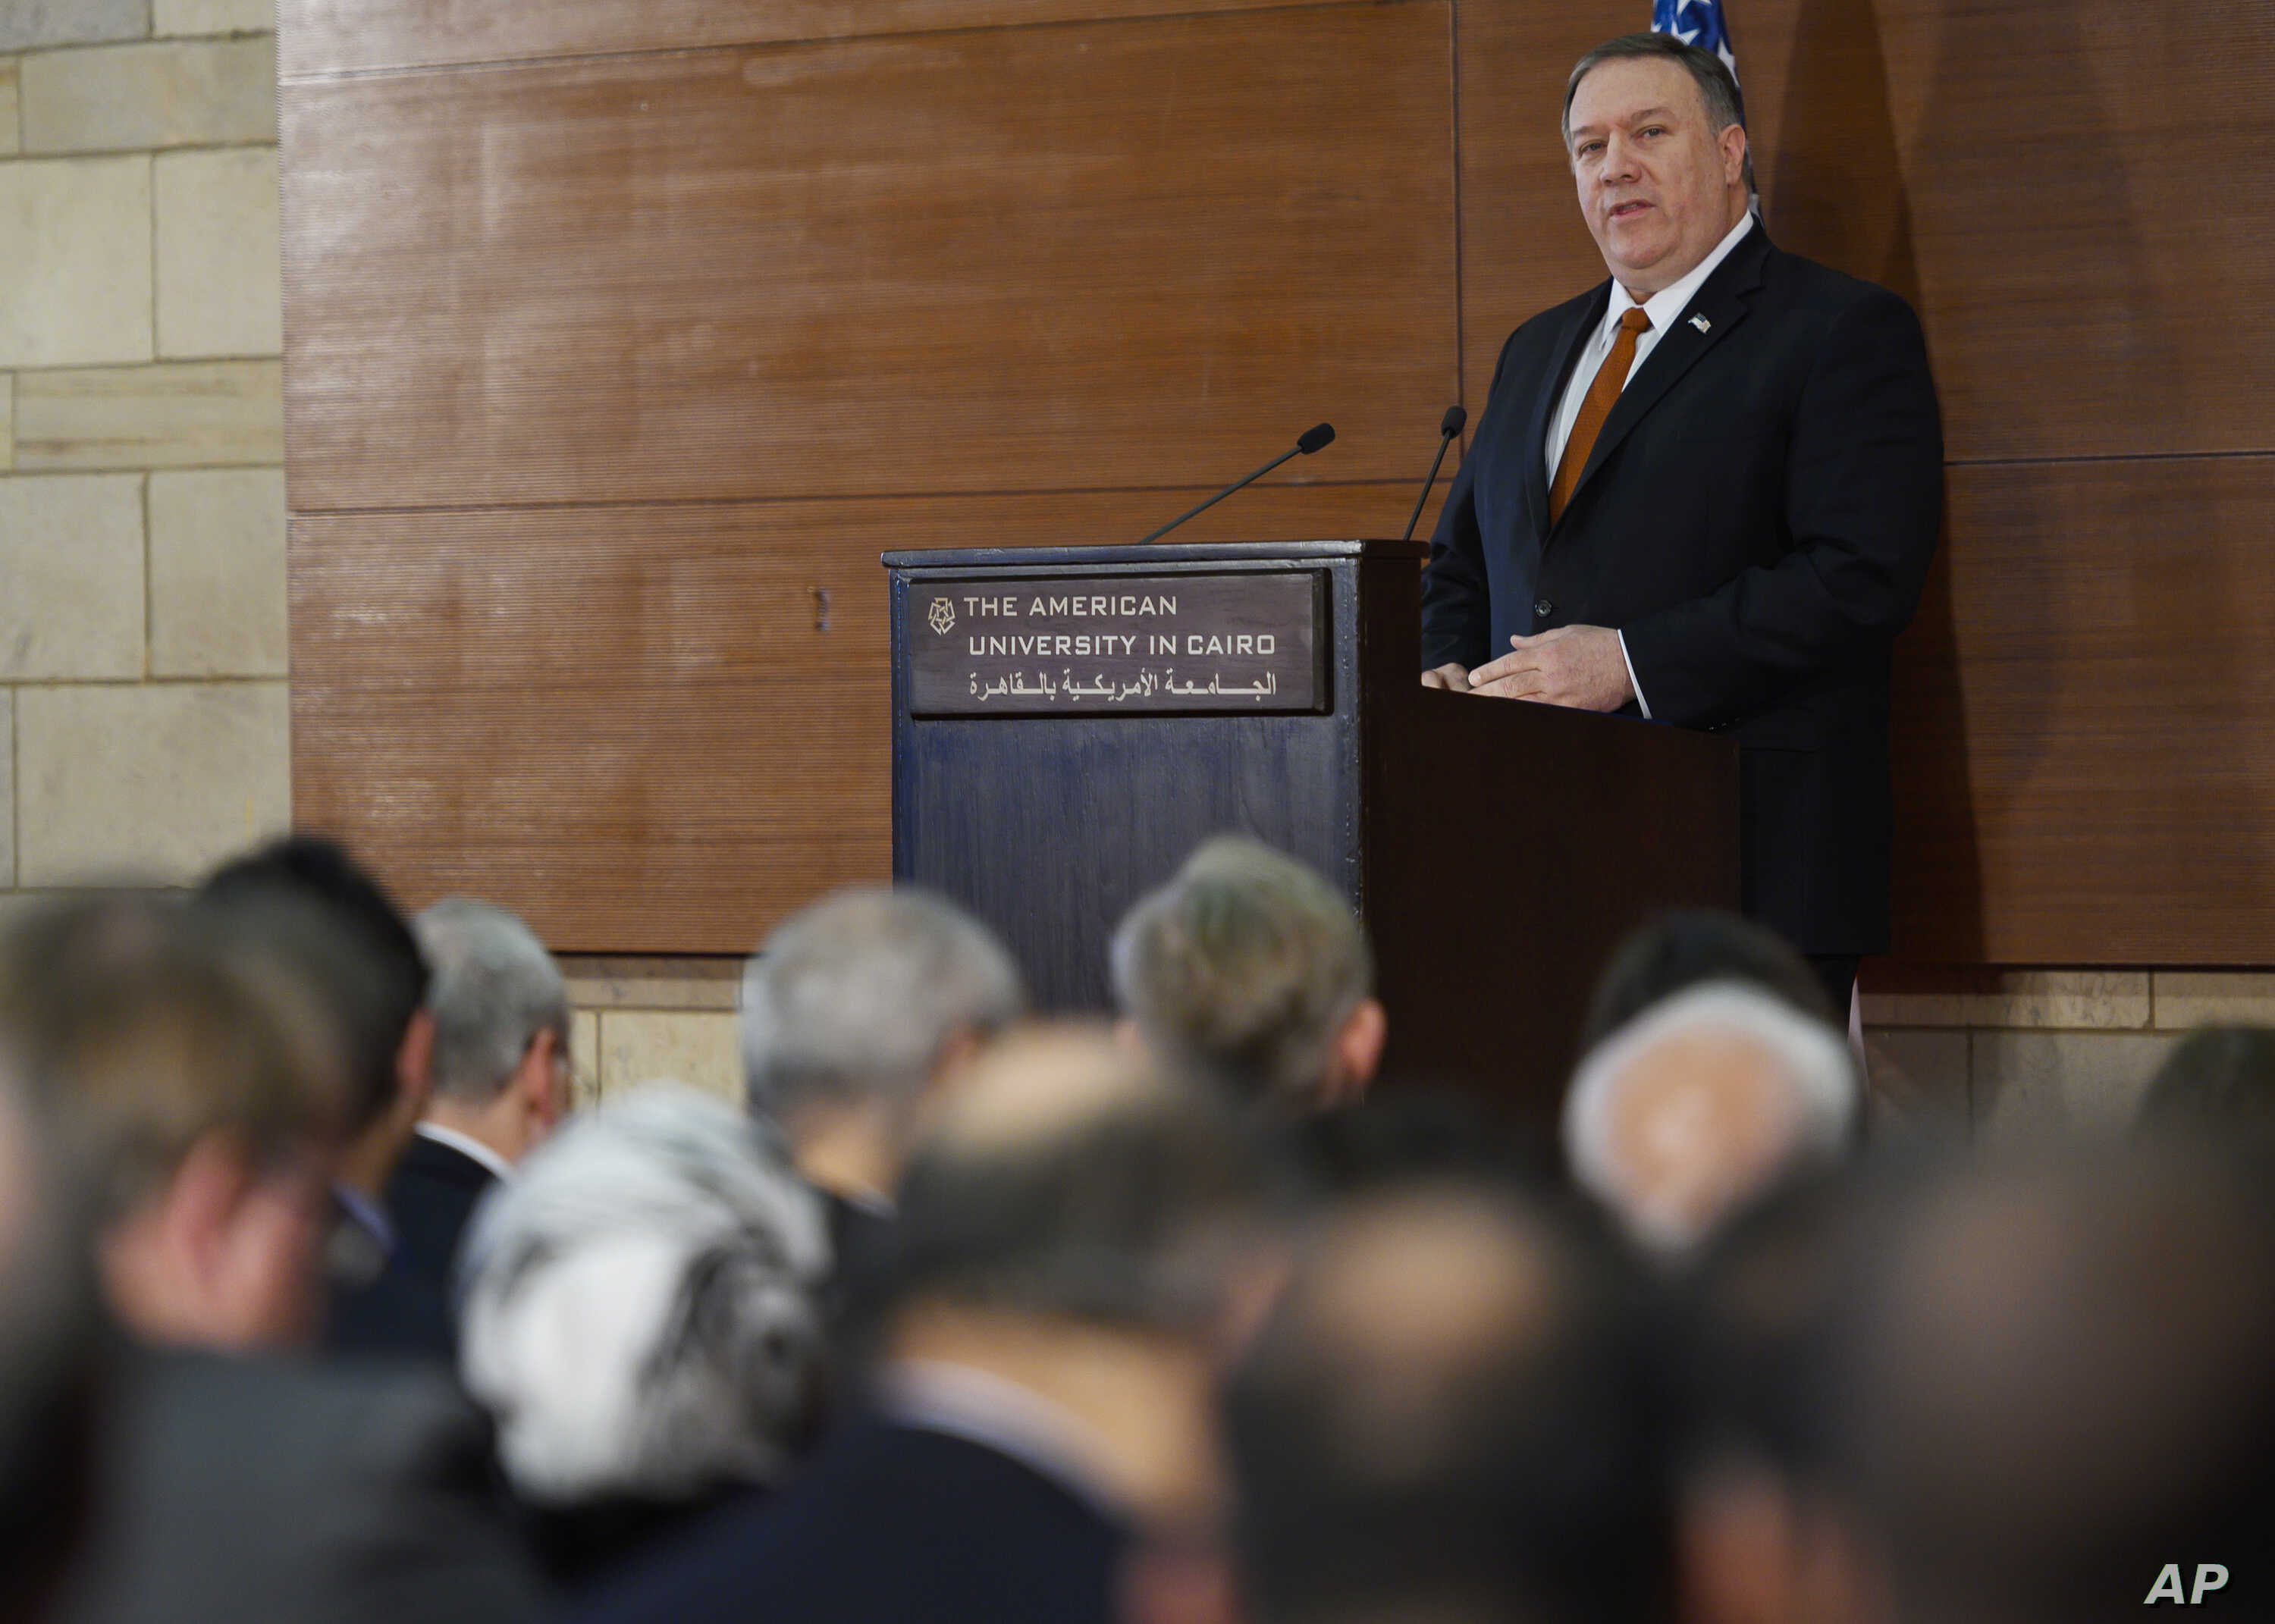 Pompeo Calls for New Spirit of Cooperation Between US, Arab Allies